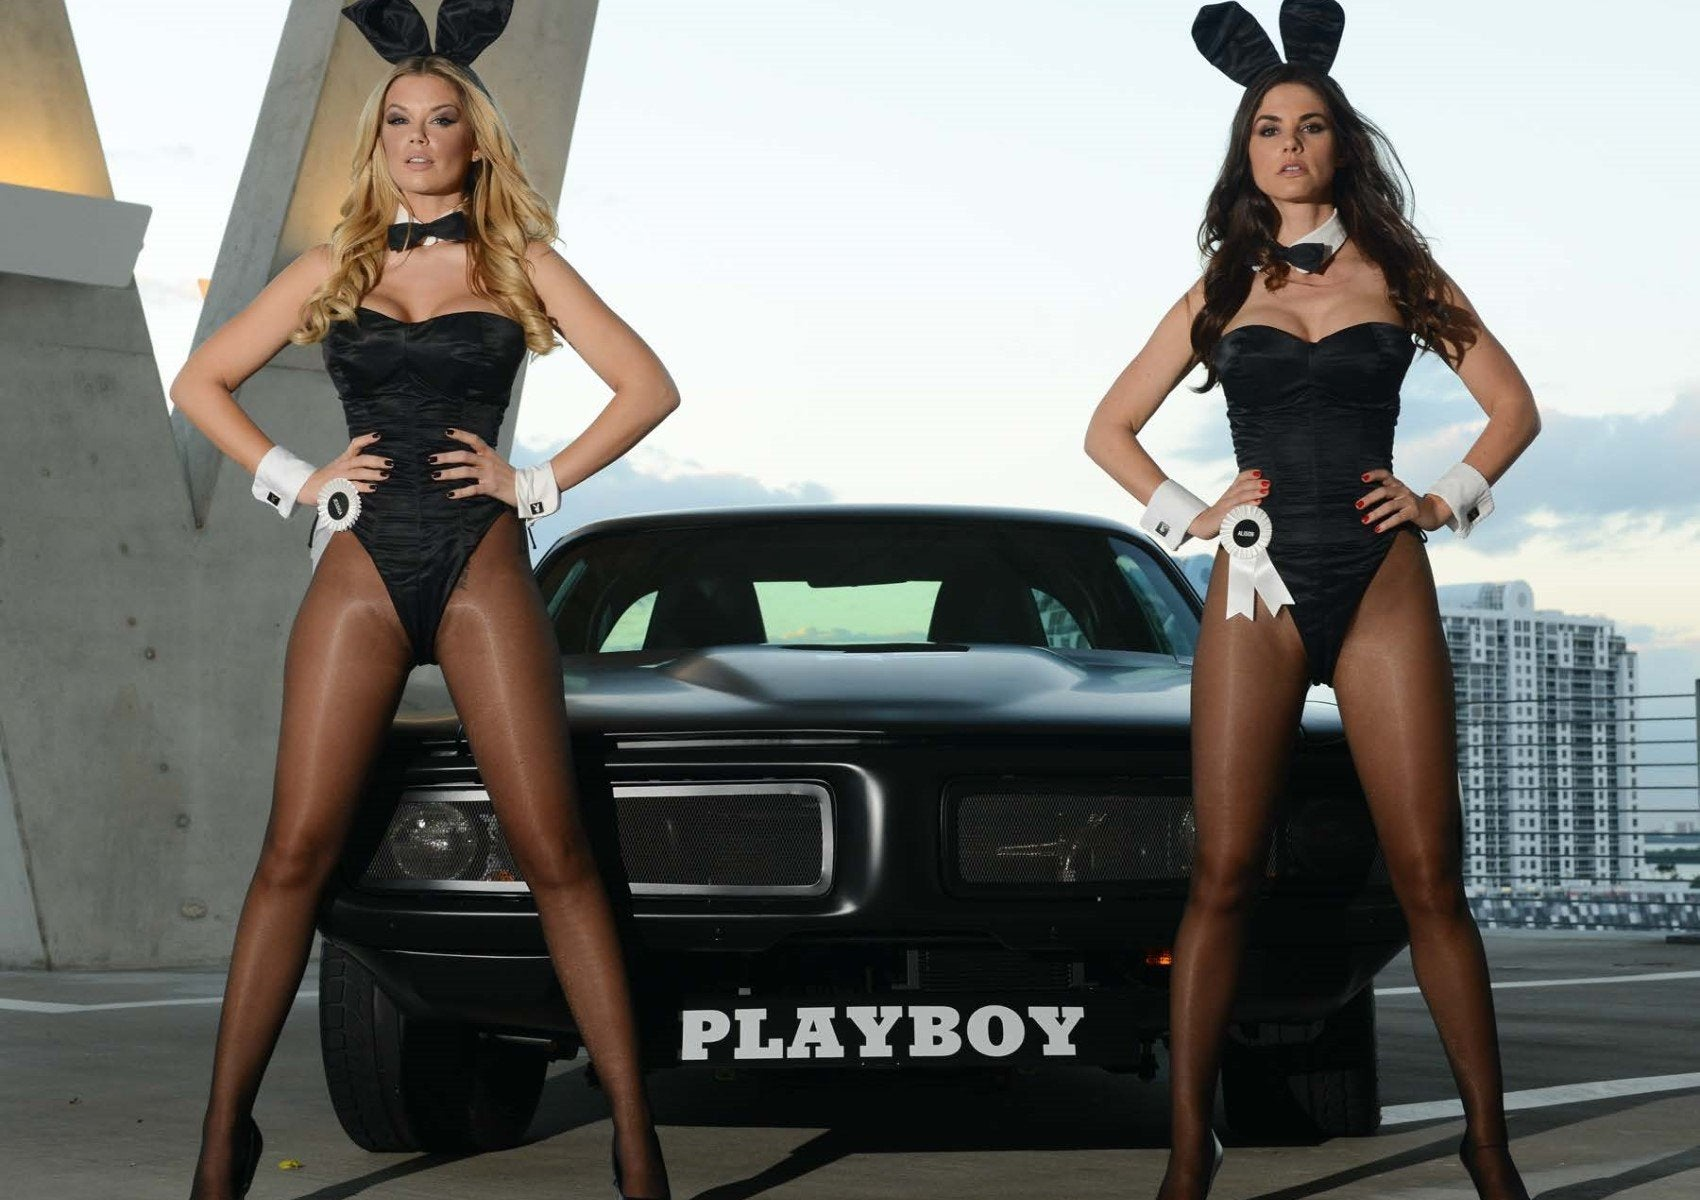 Playboy 72 Charger-Playboy-TheArsenale